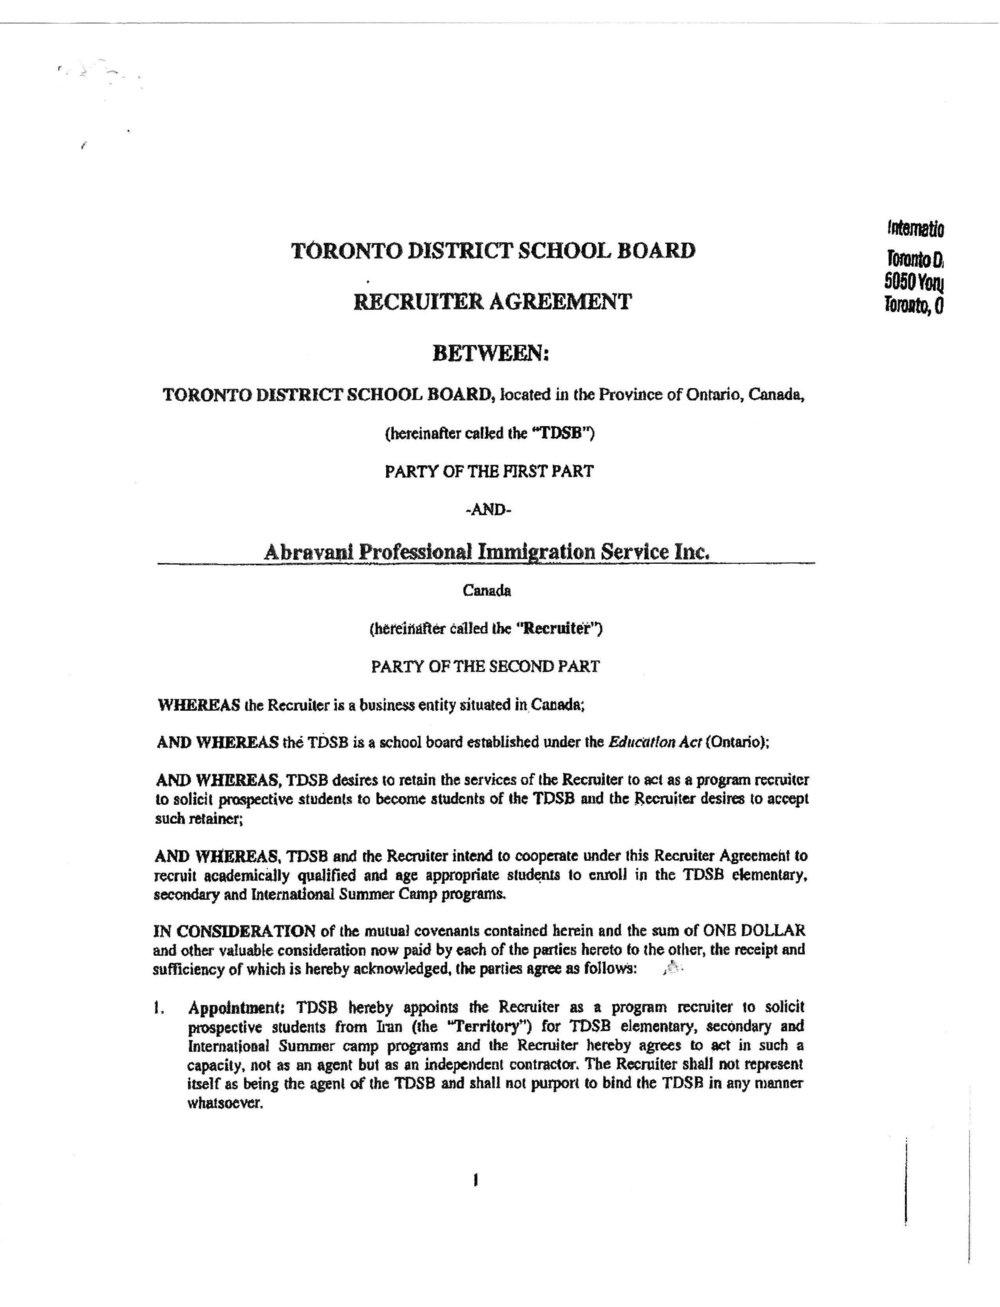 Agent certiifcate_Page_04.jpg